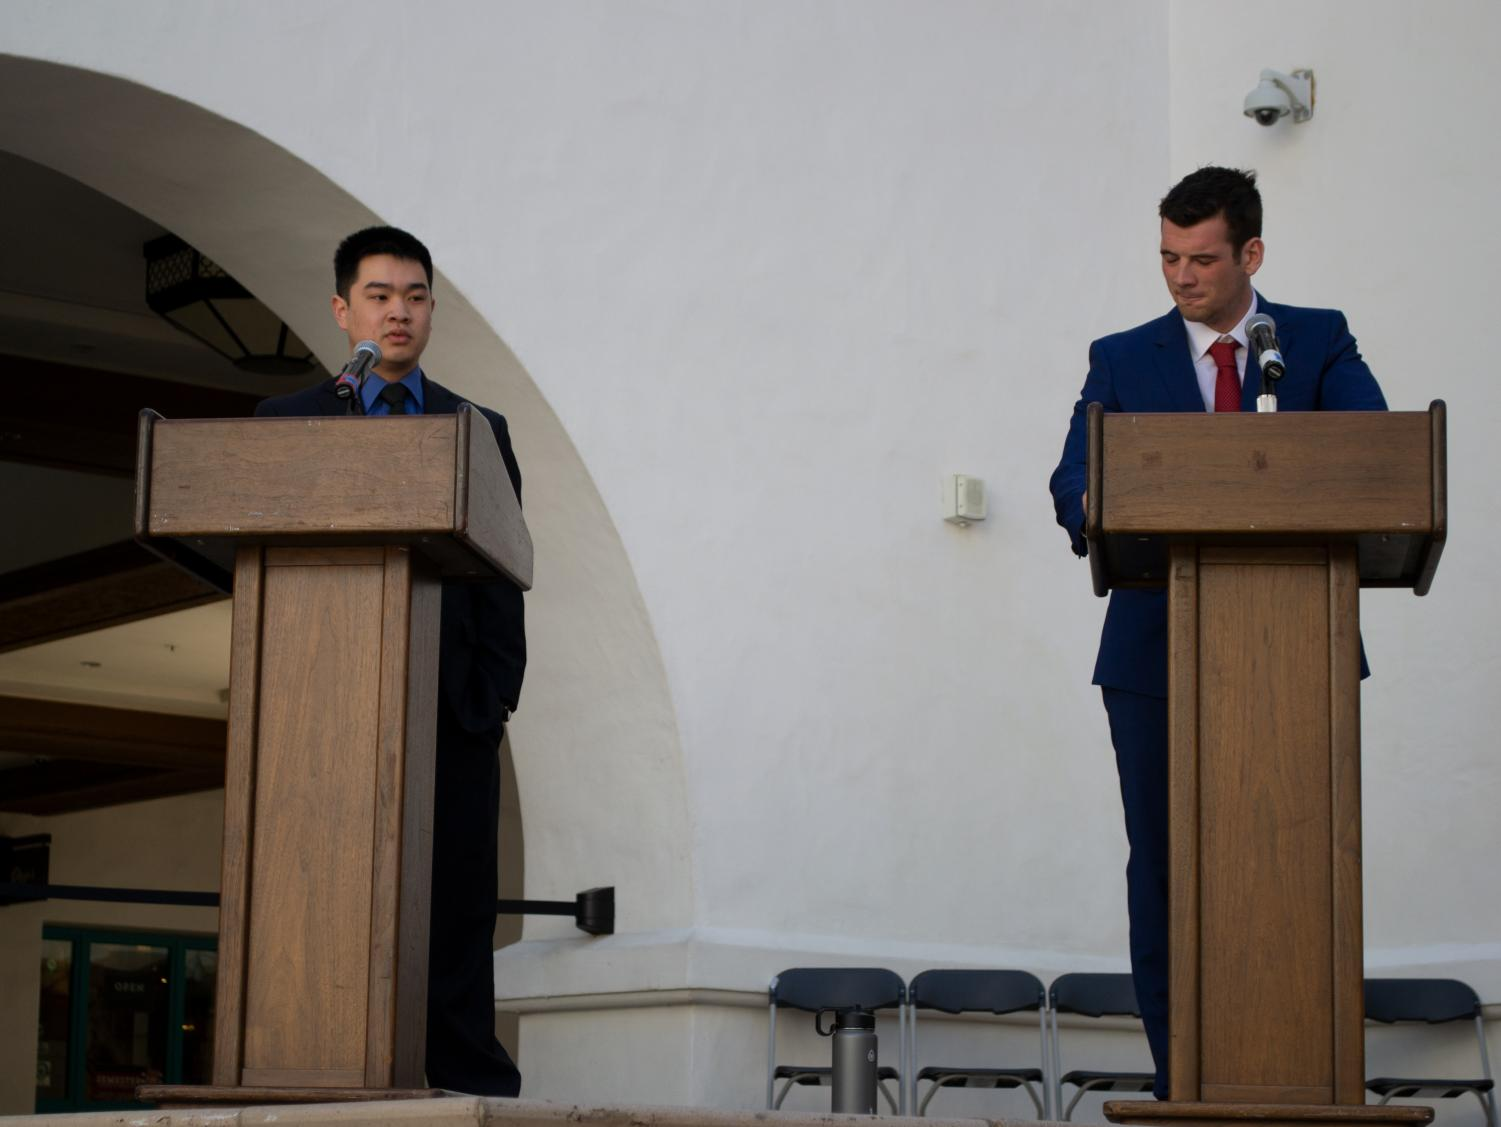 Vice President of University Affairs candidates Winston Liew (left) and George Scott square off in front of students at the Conrad Prebys Aztec Student Union on the afternoon of Monday, March 18.